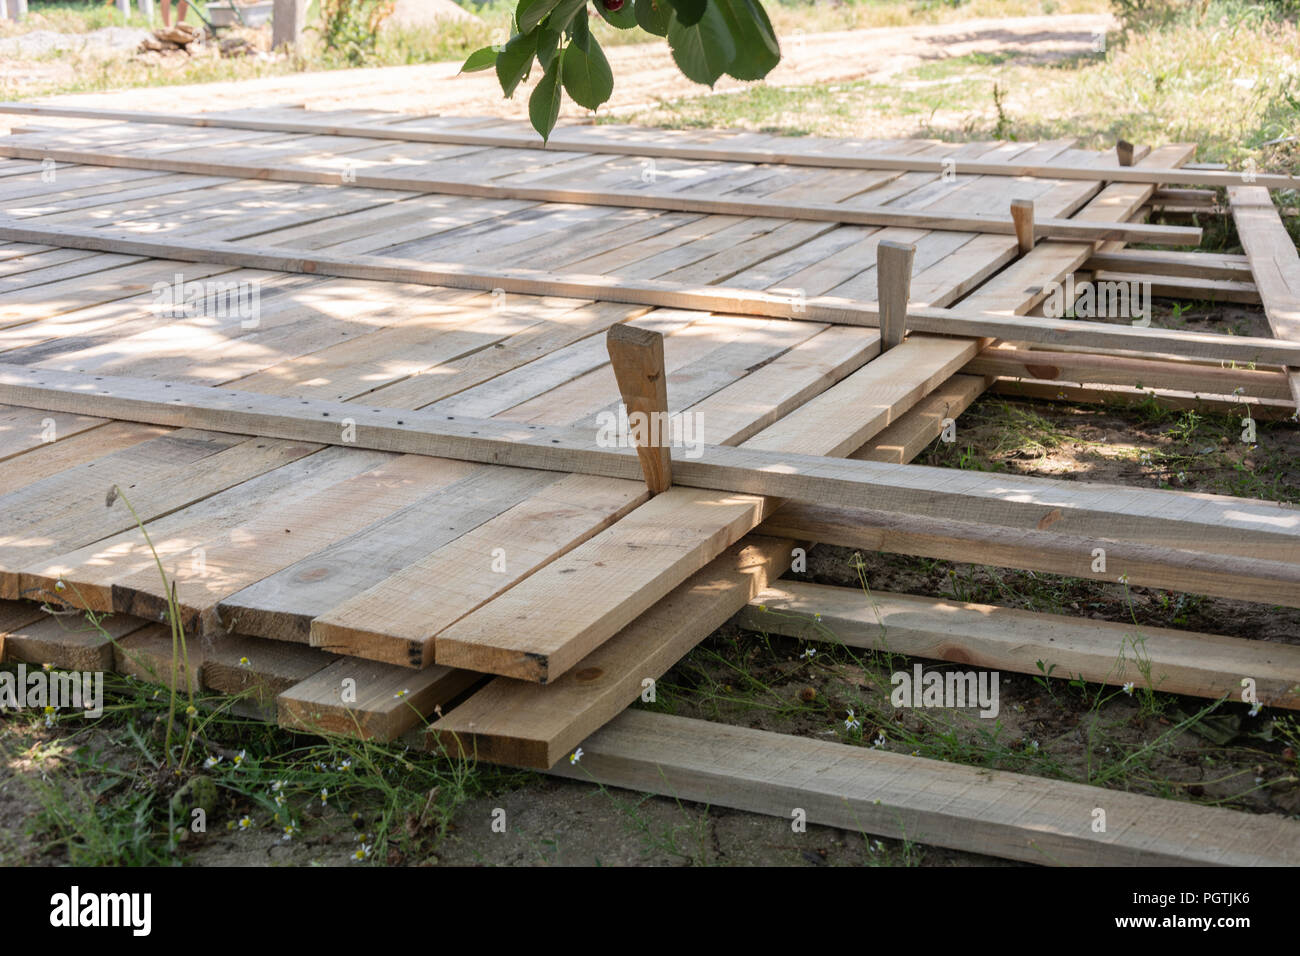 Wooden formwork concrete strip foundation for A-frame type house Stock Photo